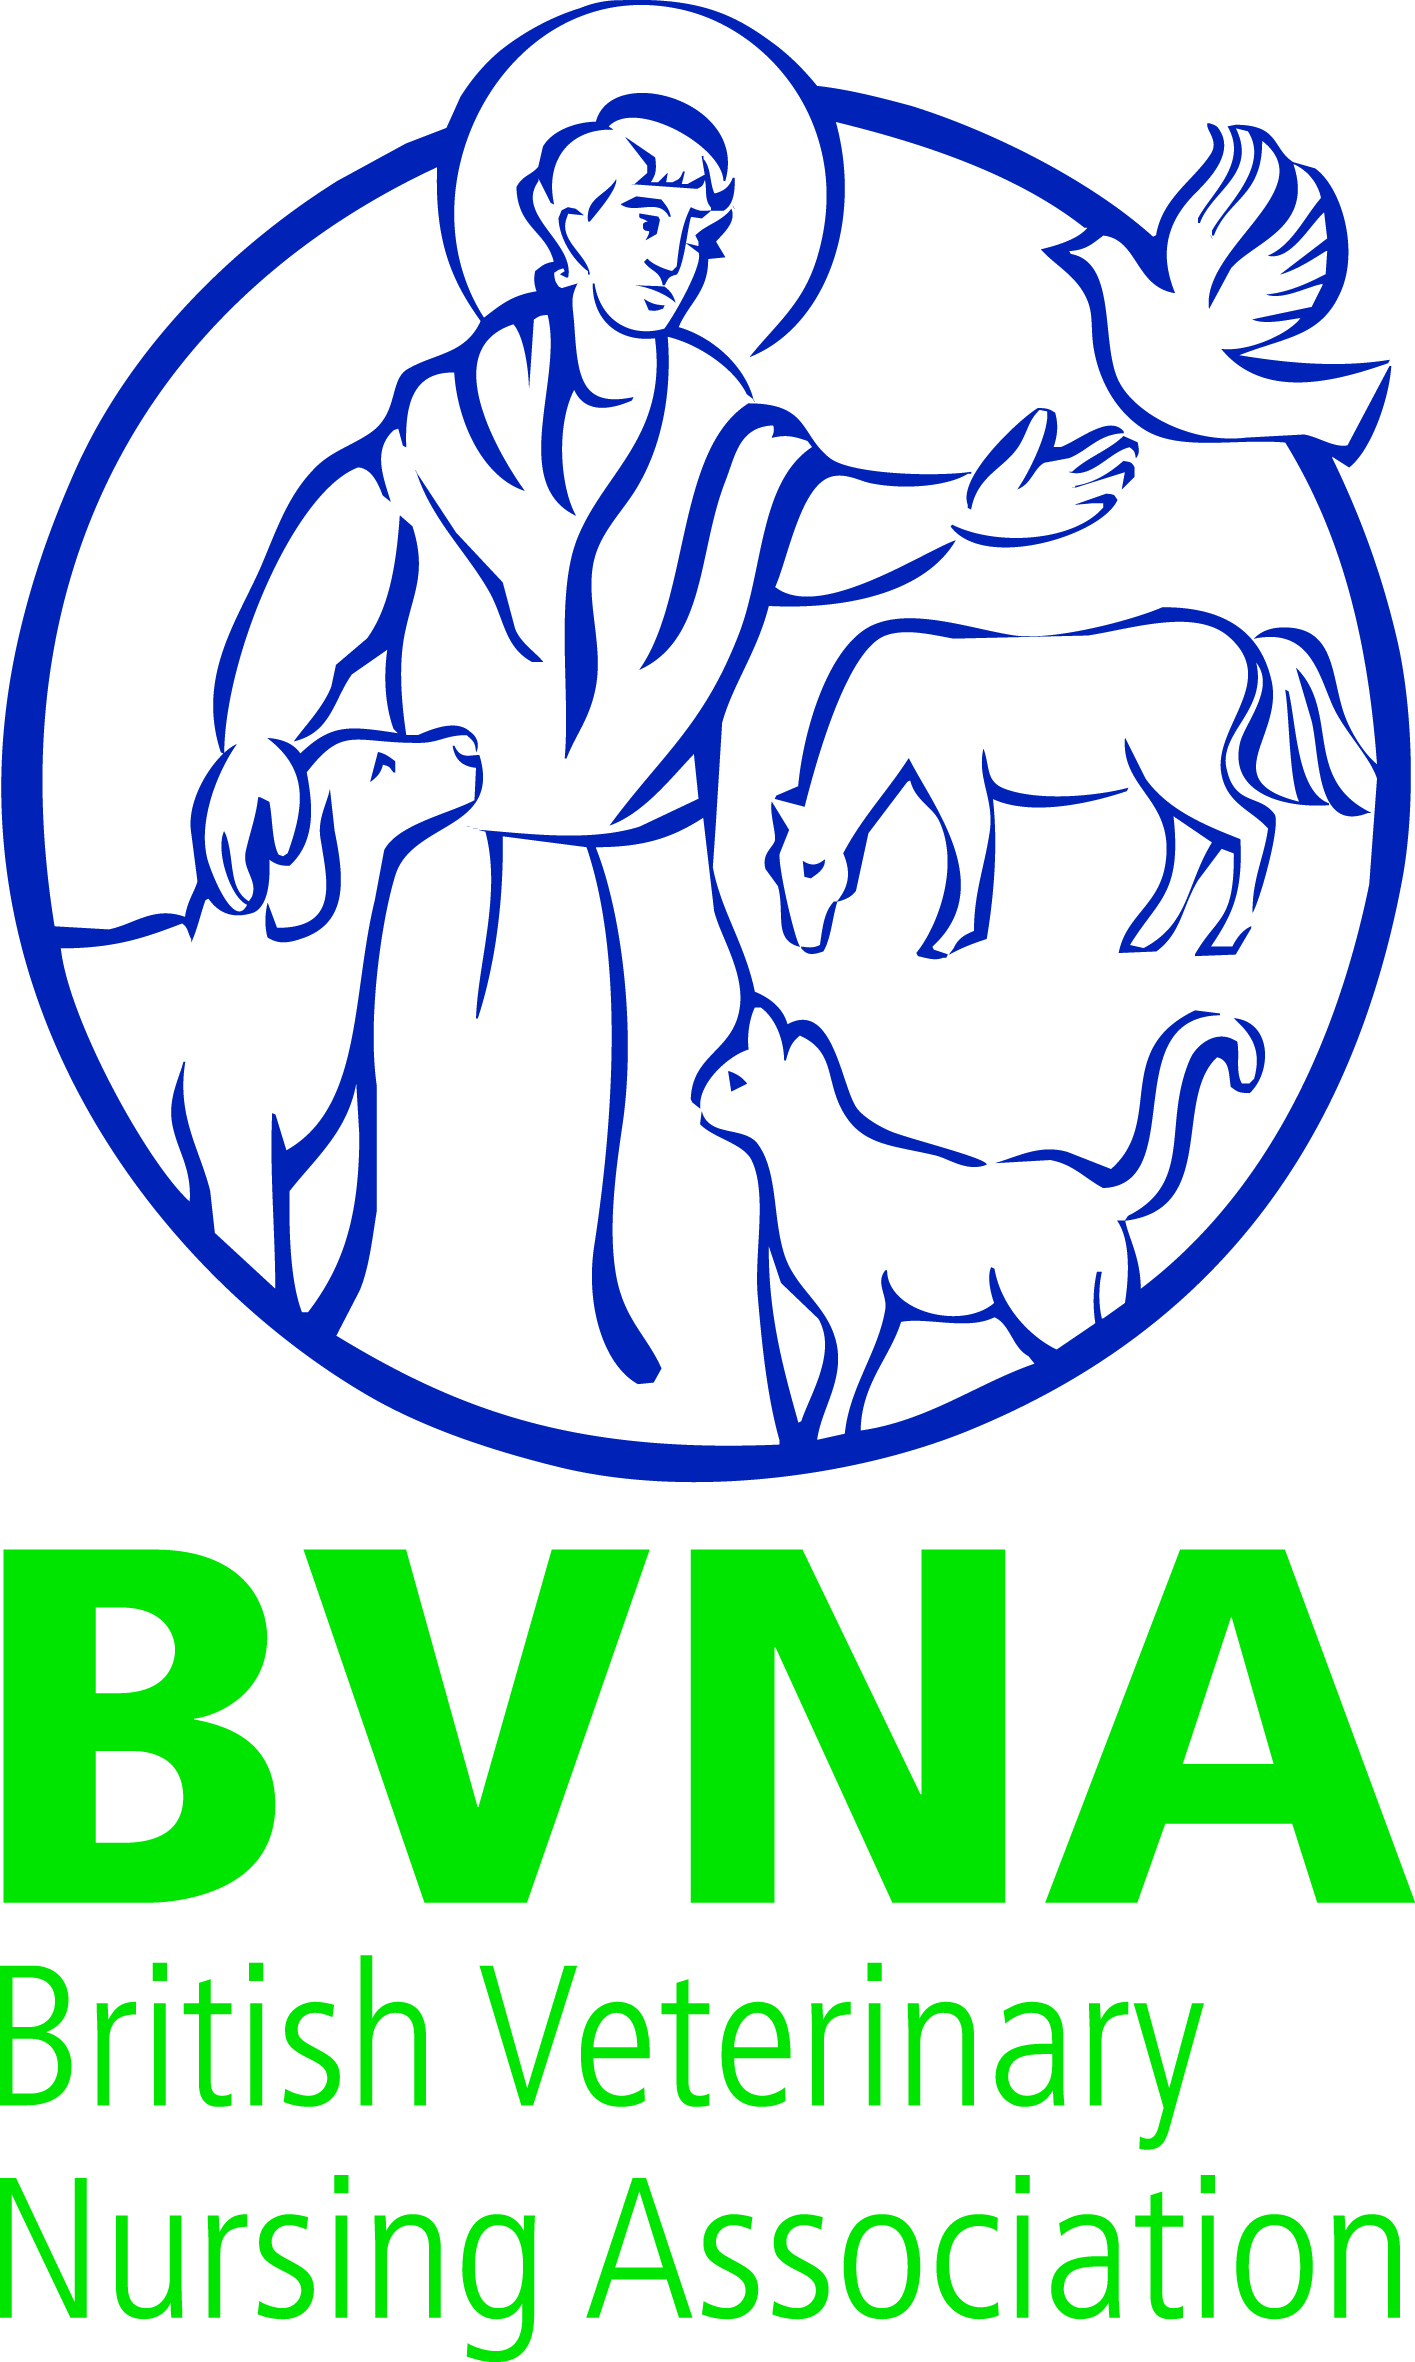 British Veterinary Nursing Association Ltd (BVNA)